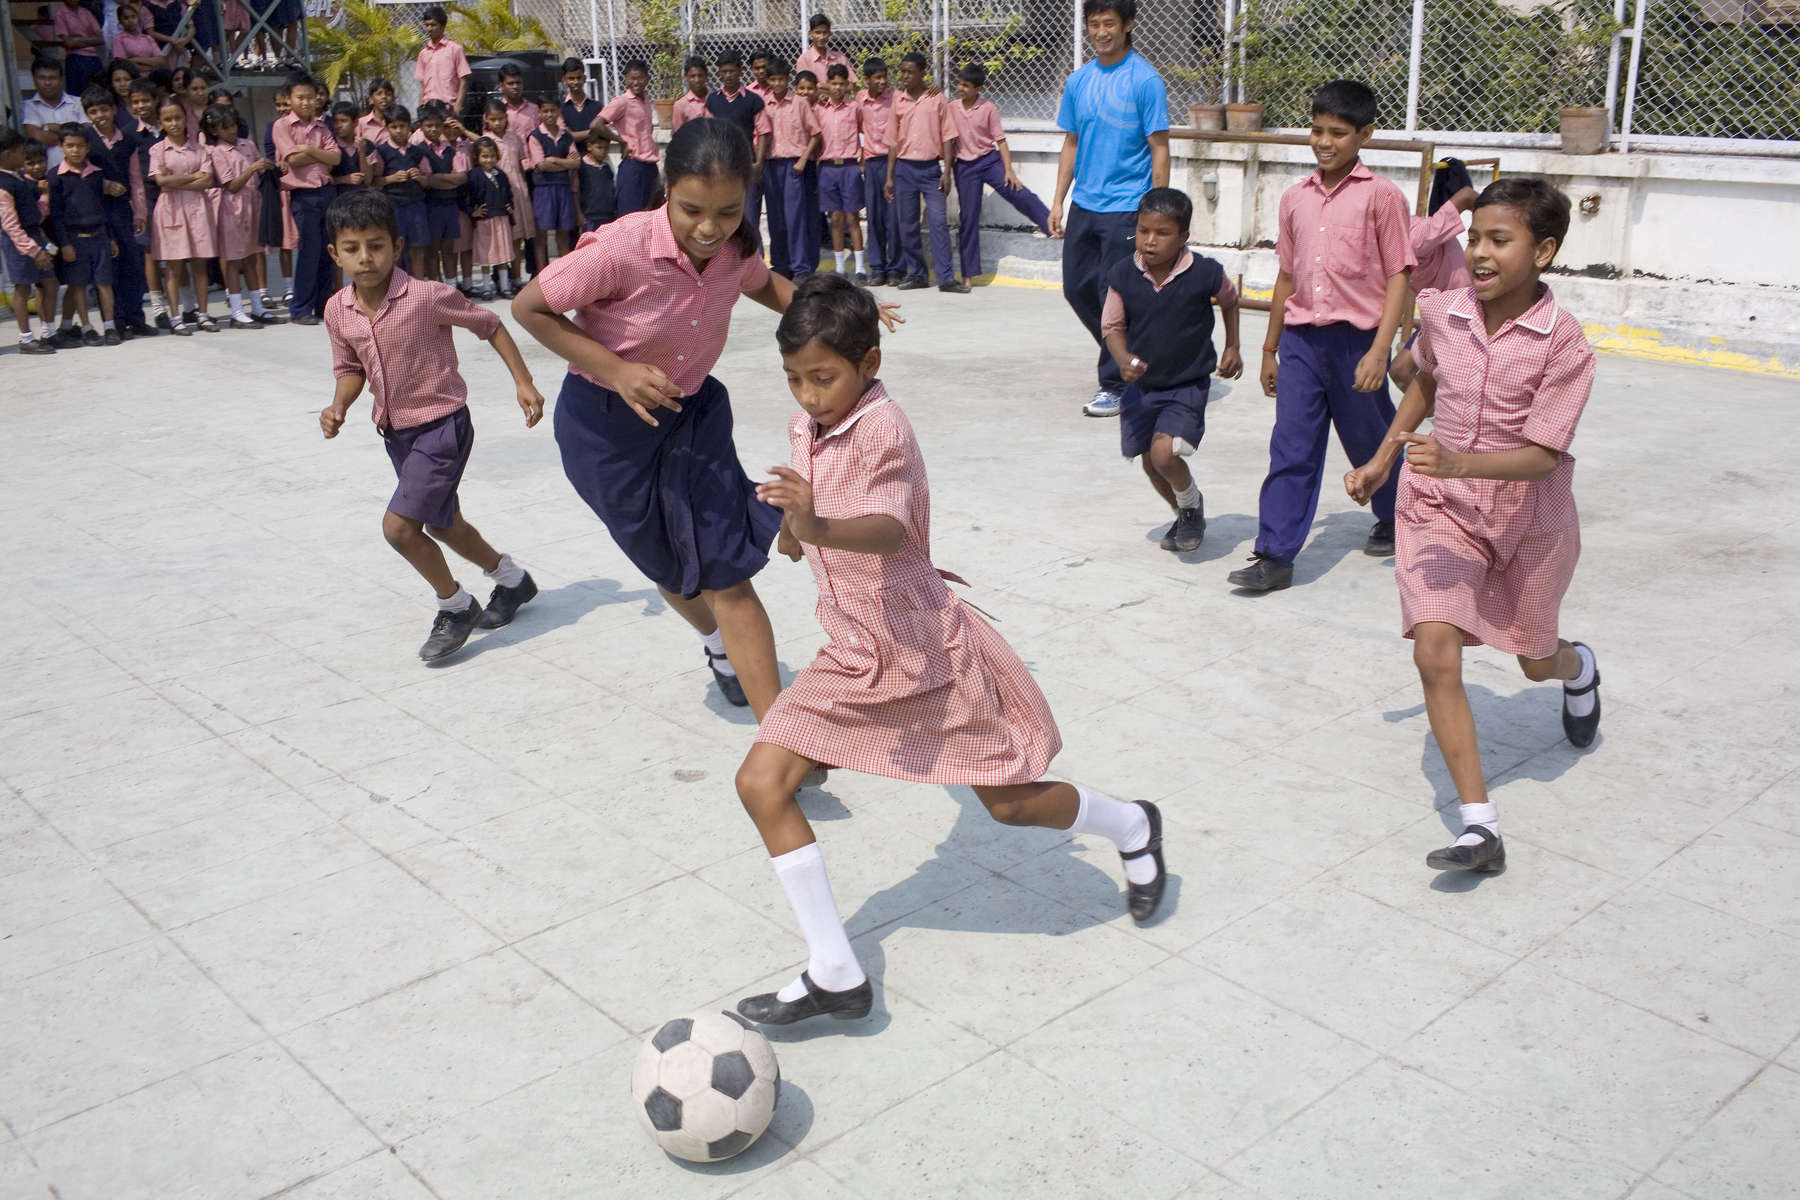 School kids play a game of football during a break from lessons at the Future Hope school in Kolkata. Football has always played a major role at the school. Through the sport the kids learn discipline and a sense of purpose. Set up over 18 years ago, it provides a home, education and medical aid to some of the children who found themselves living on the streets of the city.In disaster areas, war zones and urban wastelands, football keeps humanity alive. It brings nations together and promotes unity. It encourages equality and generates pride and self-belief. It has the power to heal and to help, to motivate, to give freedom to dreams and empower a generation. There are millions of people playing the game or helping it to flourish who find that football brings a positive dimension to their lives.Away from the billionaire owned clubs with it's multi-million dollar players, Football's Hidden Story is a series of emotive human interest photographs showing the positive impact football has had at grassroot level on individuals and communities all around the world.